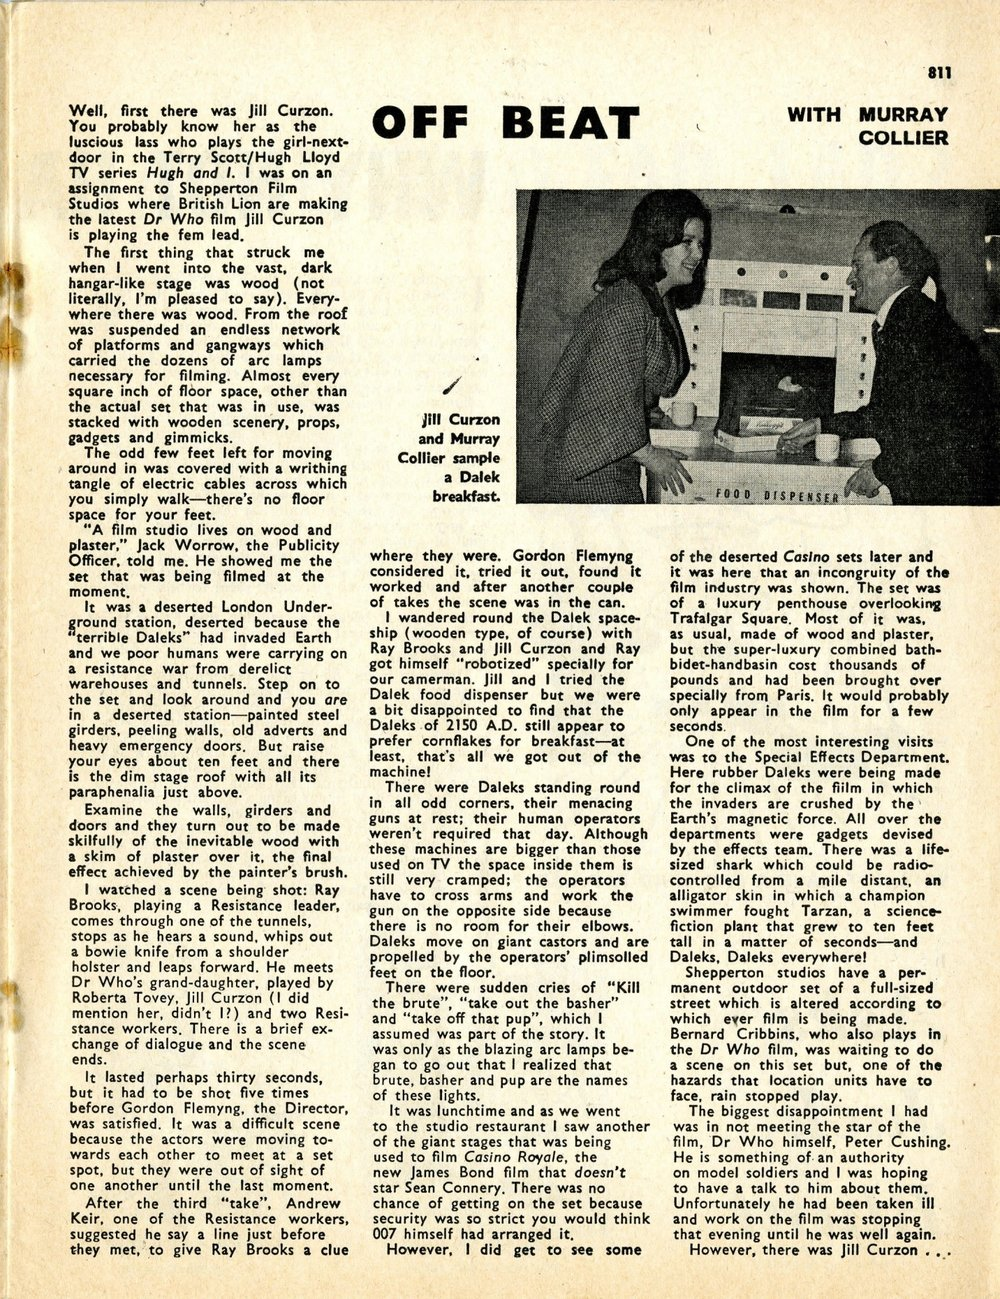 The Scout, 9 April 1966